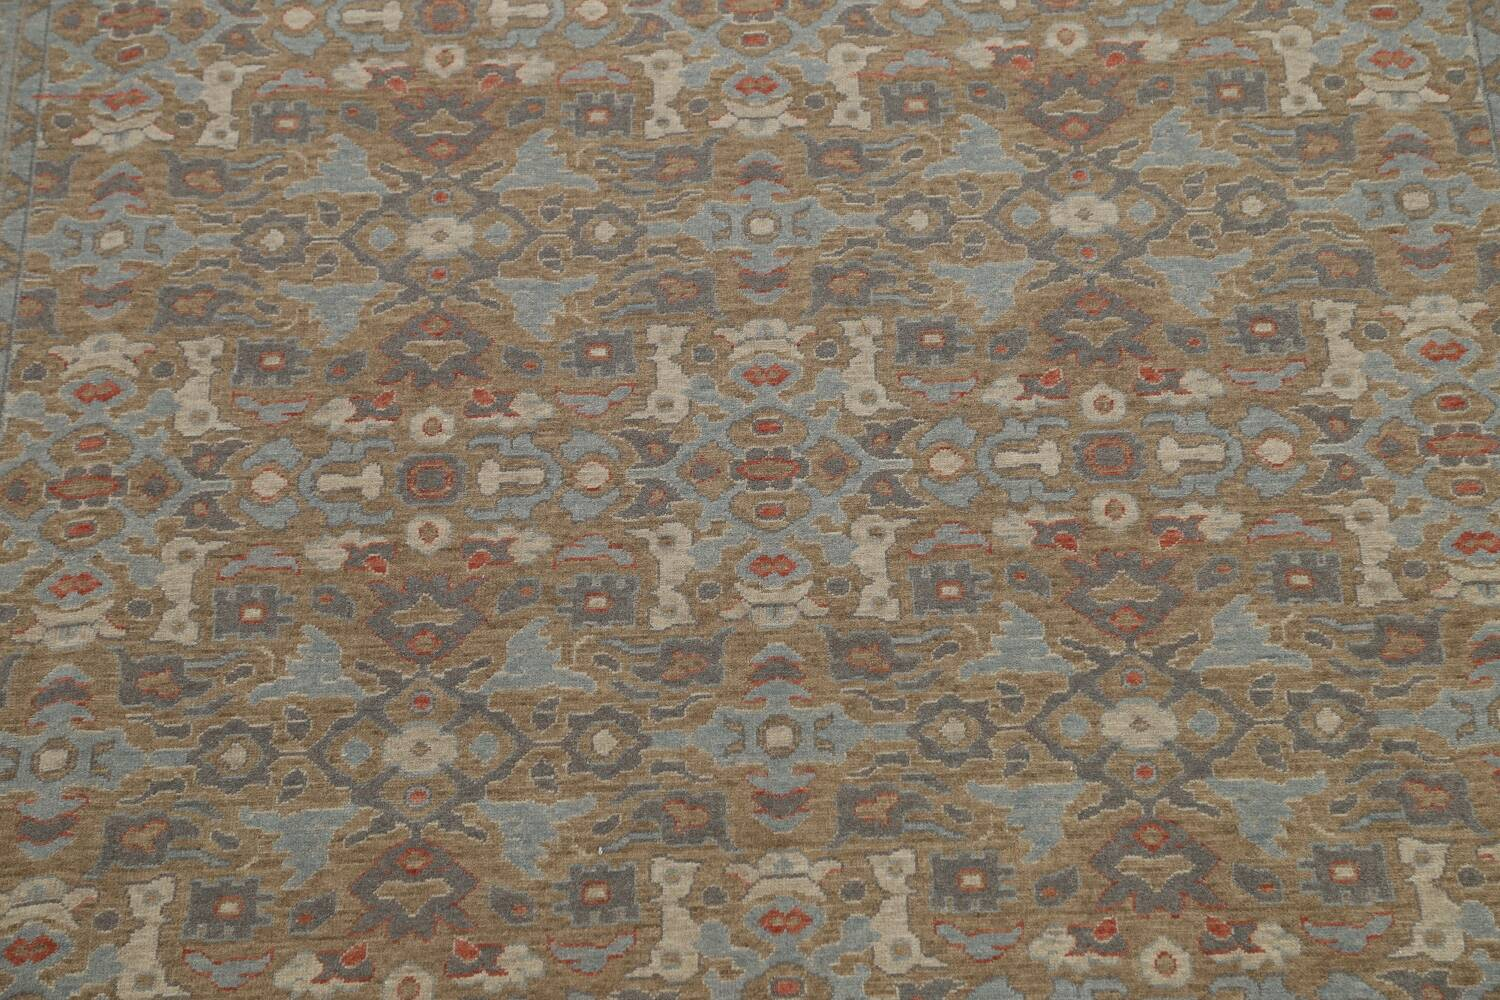 Silver Washed Ziegler Turkish Area Rug 9x12 image 4